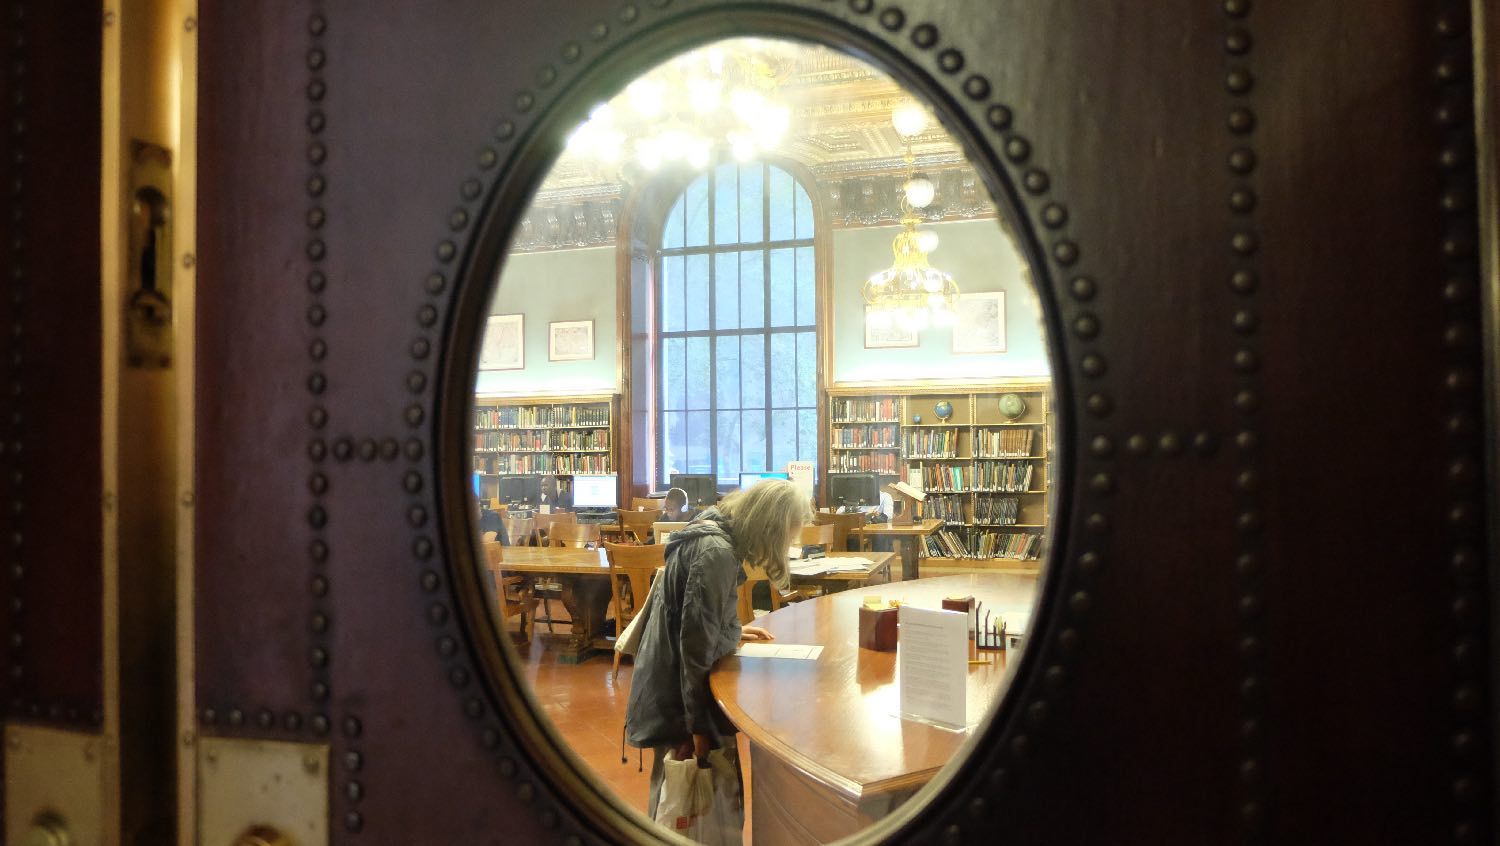 The New York Public Library | Door porthole | 19 th century architecture | photo sandrine cohen